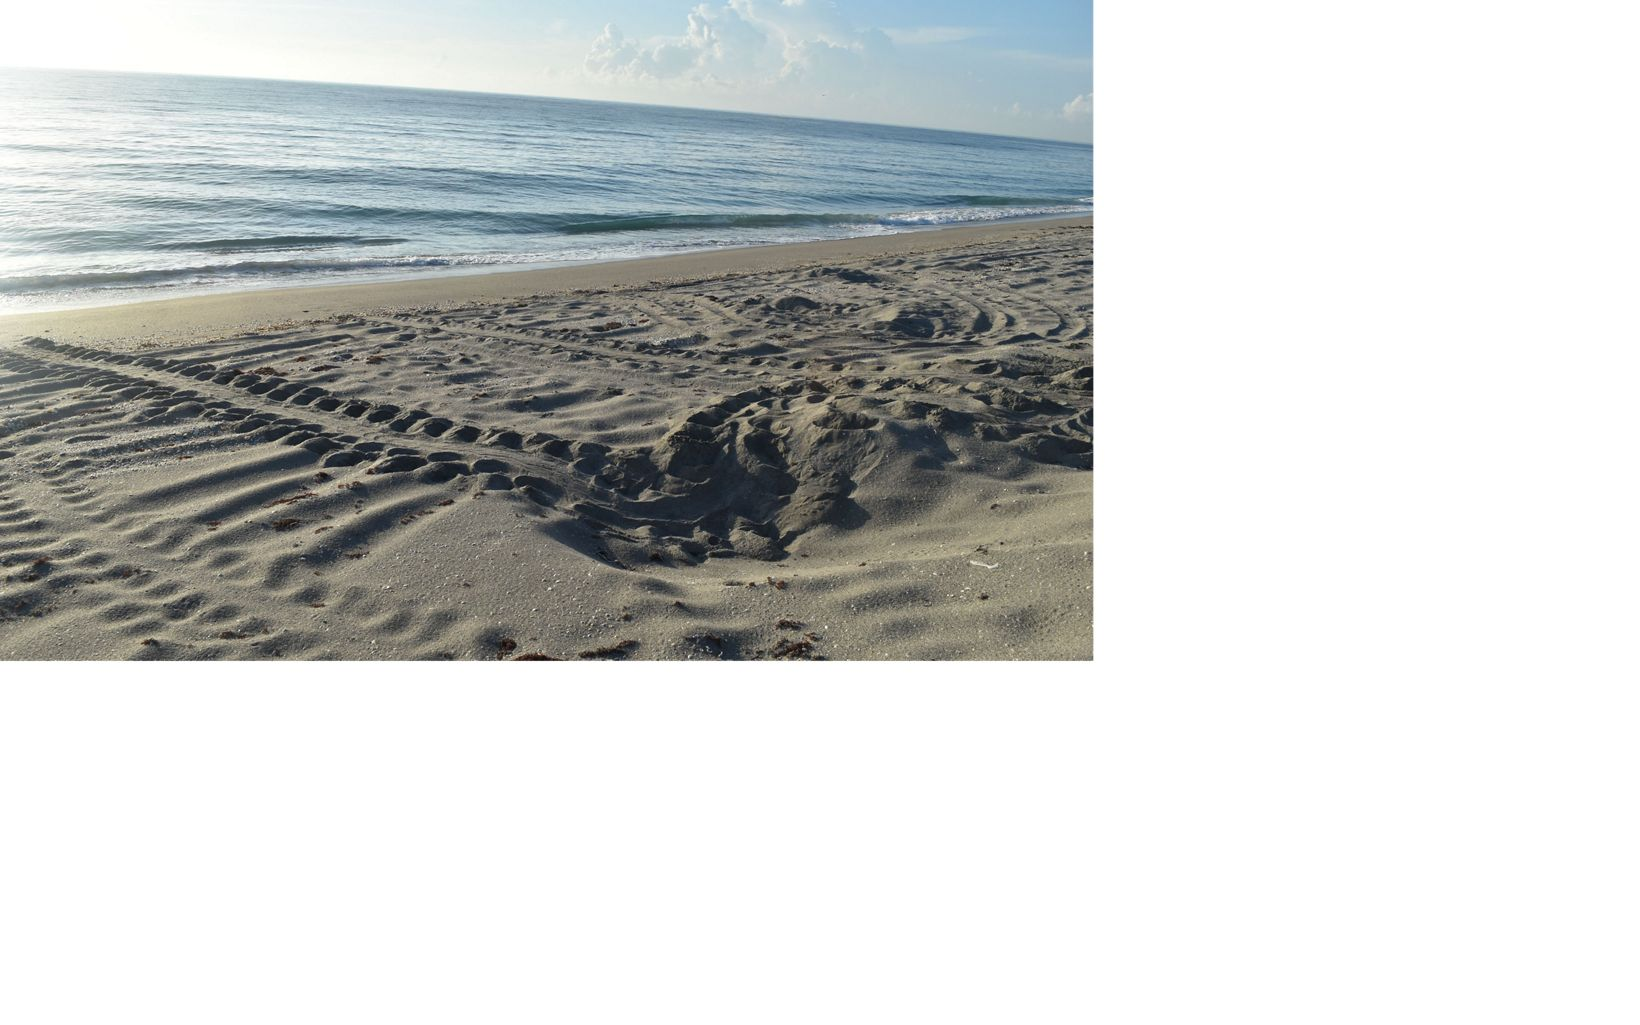 Sea turtle nest and tracks at Blowing Rocks Preserve.